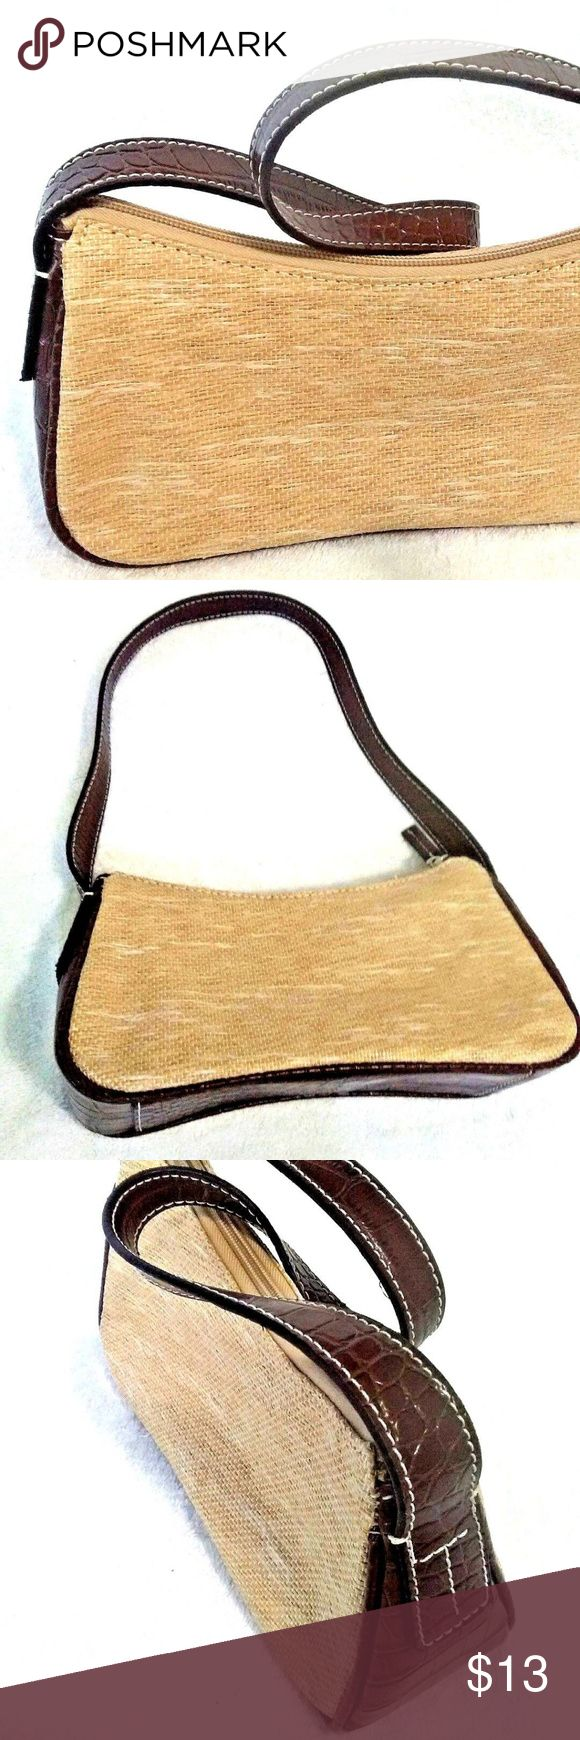 Tommy Hilfiger Small Purse/handbag Brown and Beige Tommy Hilfiger Small Purse/handbag Brown and Beige in Great Condition. ON SALE! Tommy Hilfiger Bags Mini Bags